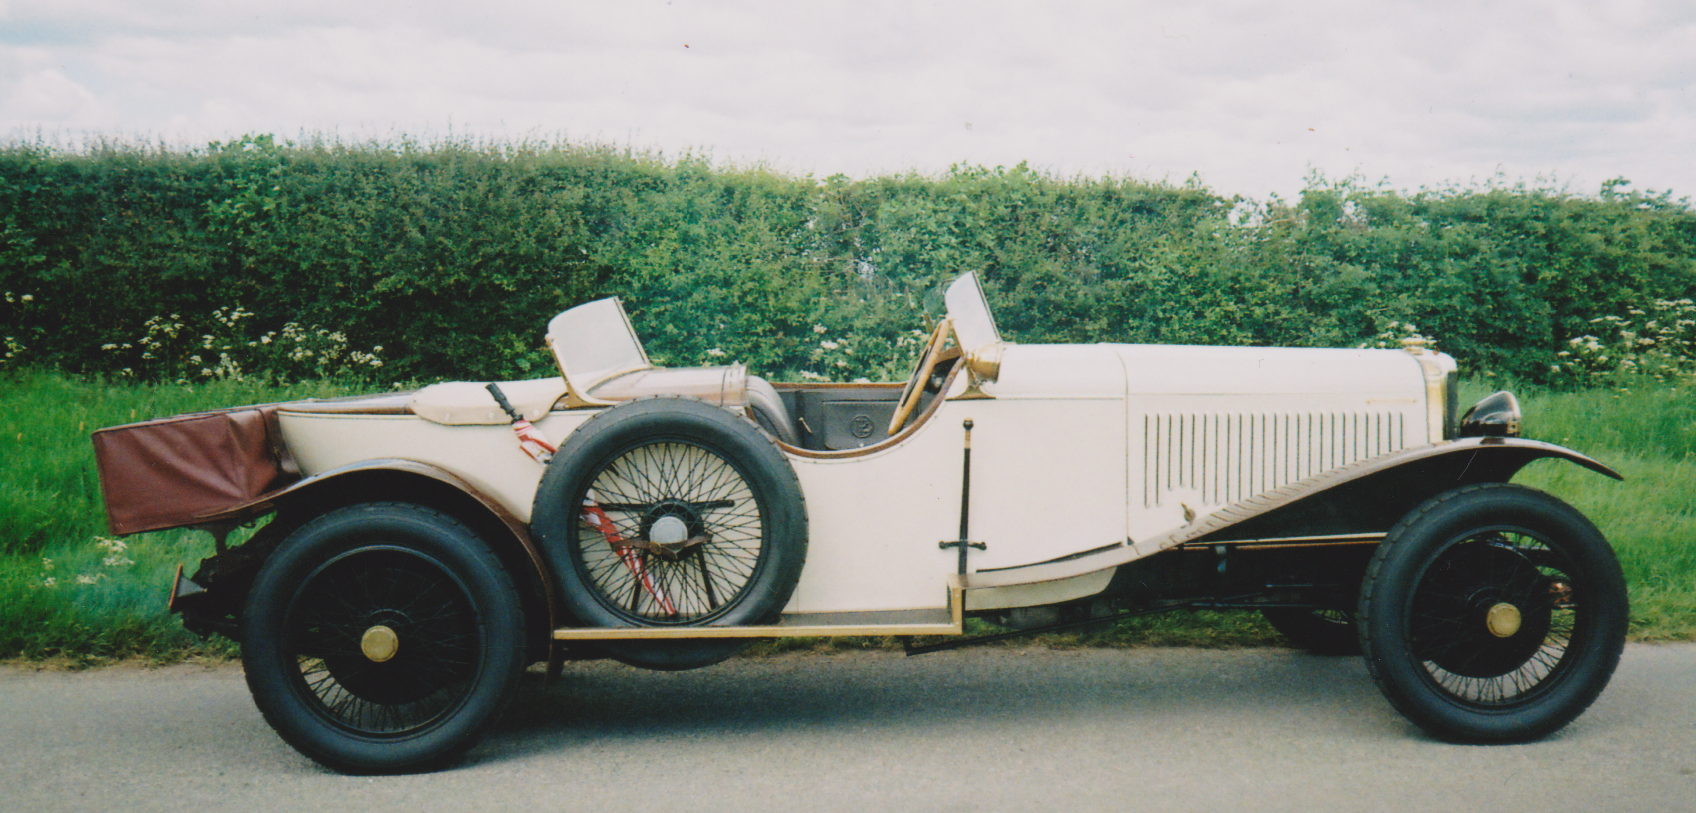 1924 Panhard Levassor 6.3 litres Straight 8. For Sale (picture 1 of 6)